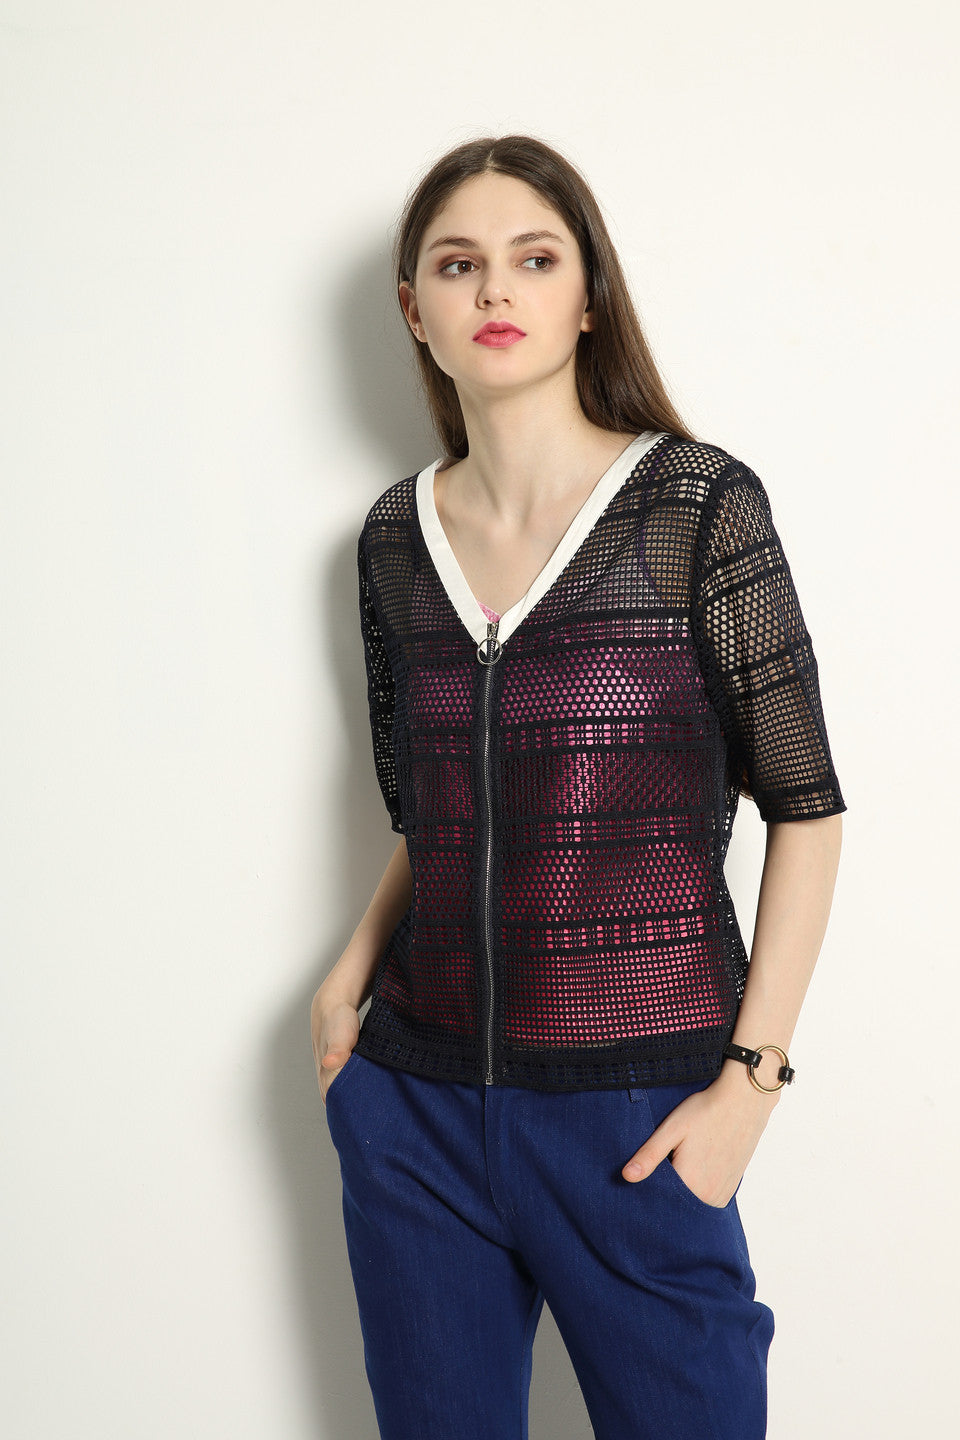 Lace Jacket With Ring Zipper Pull Set - GlanceZ   - 2